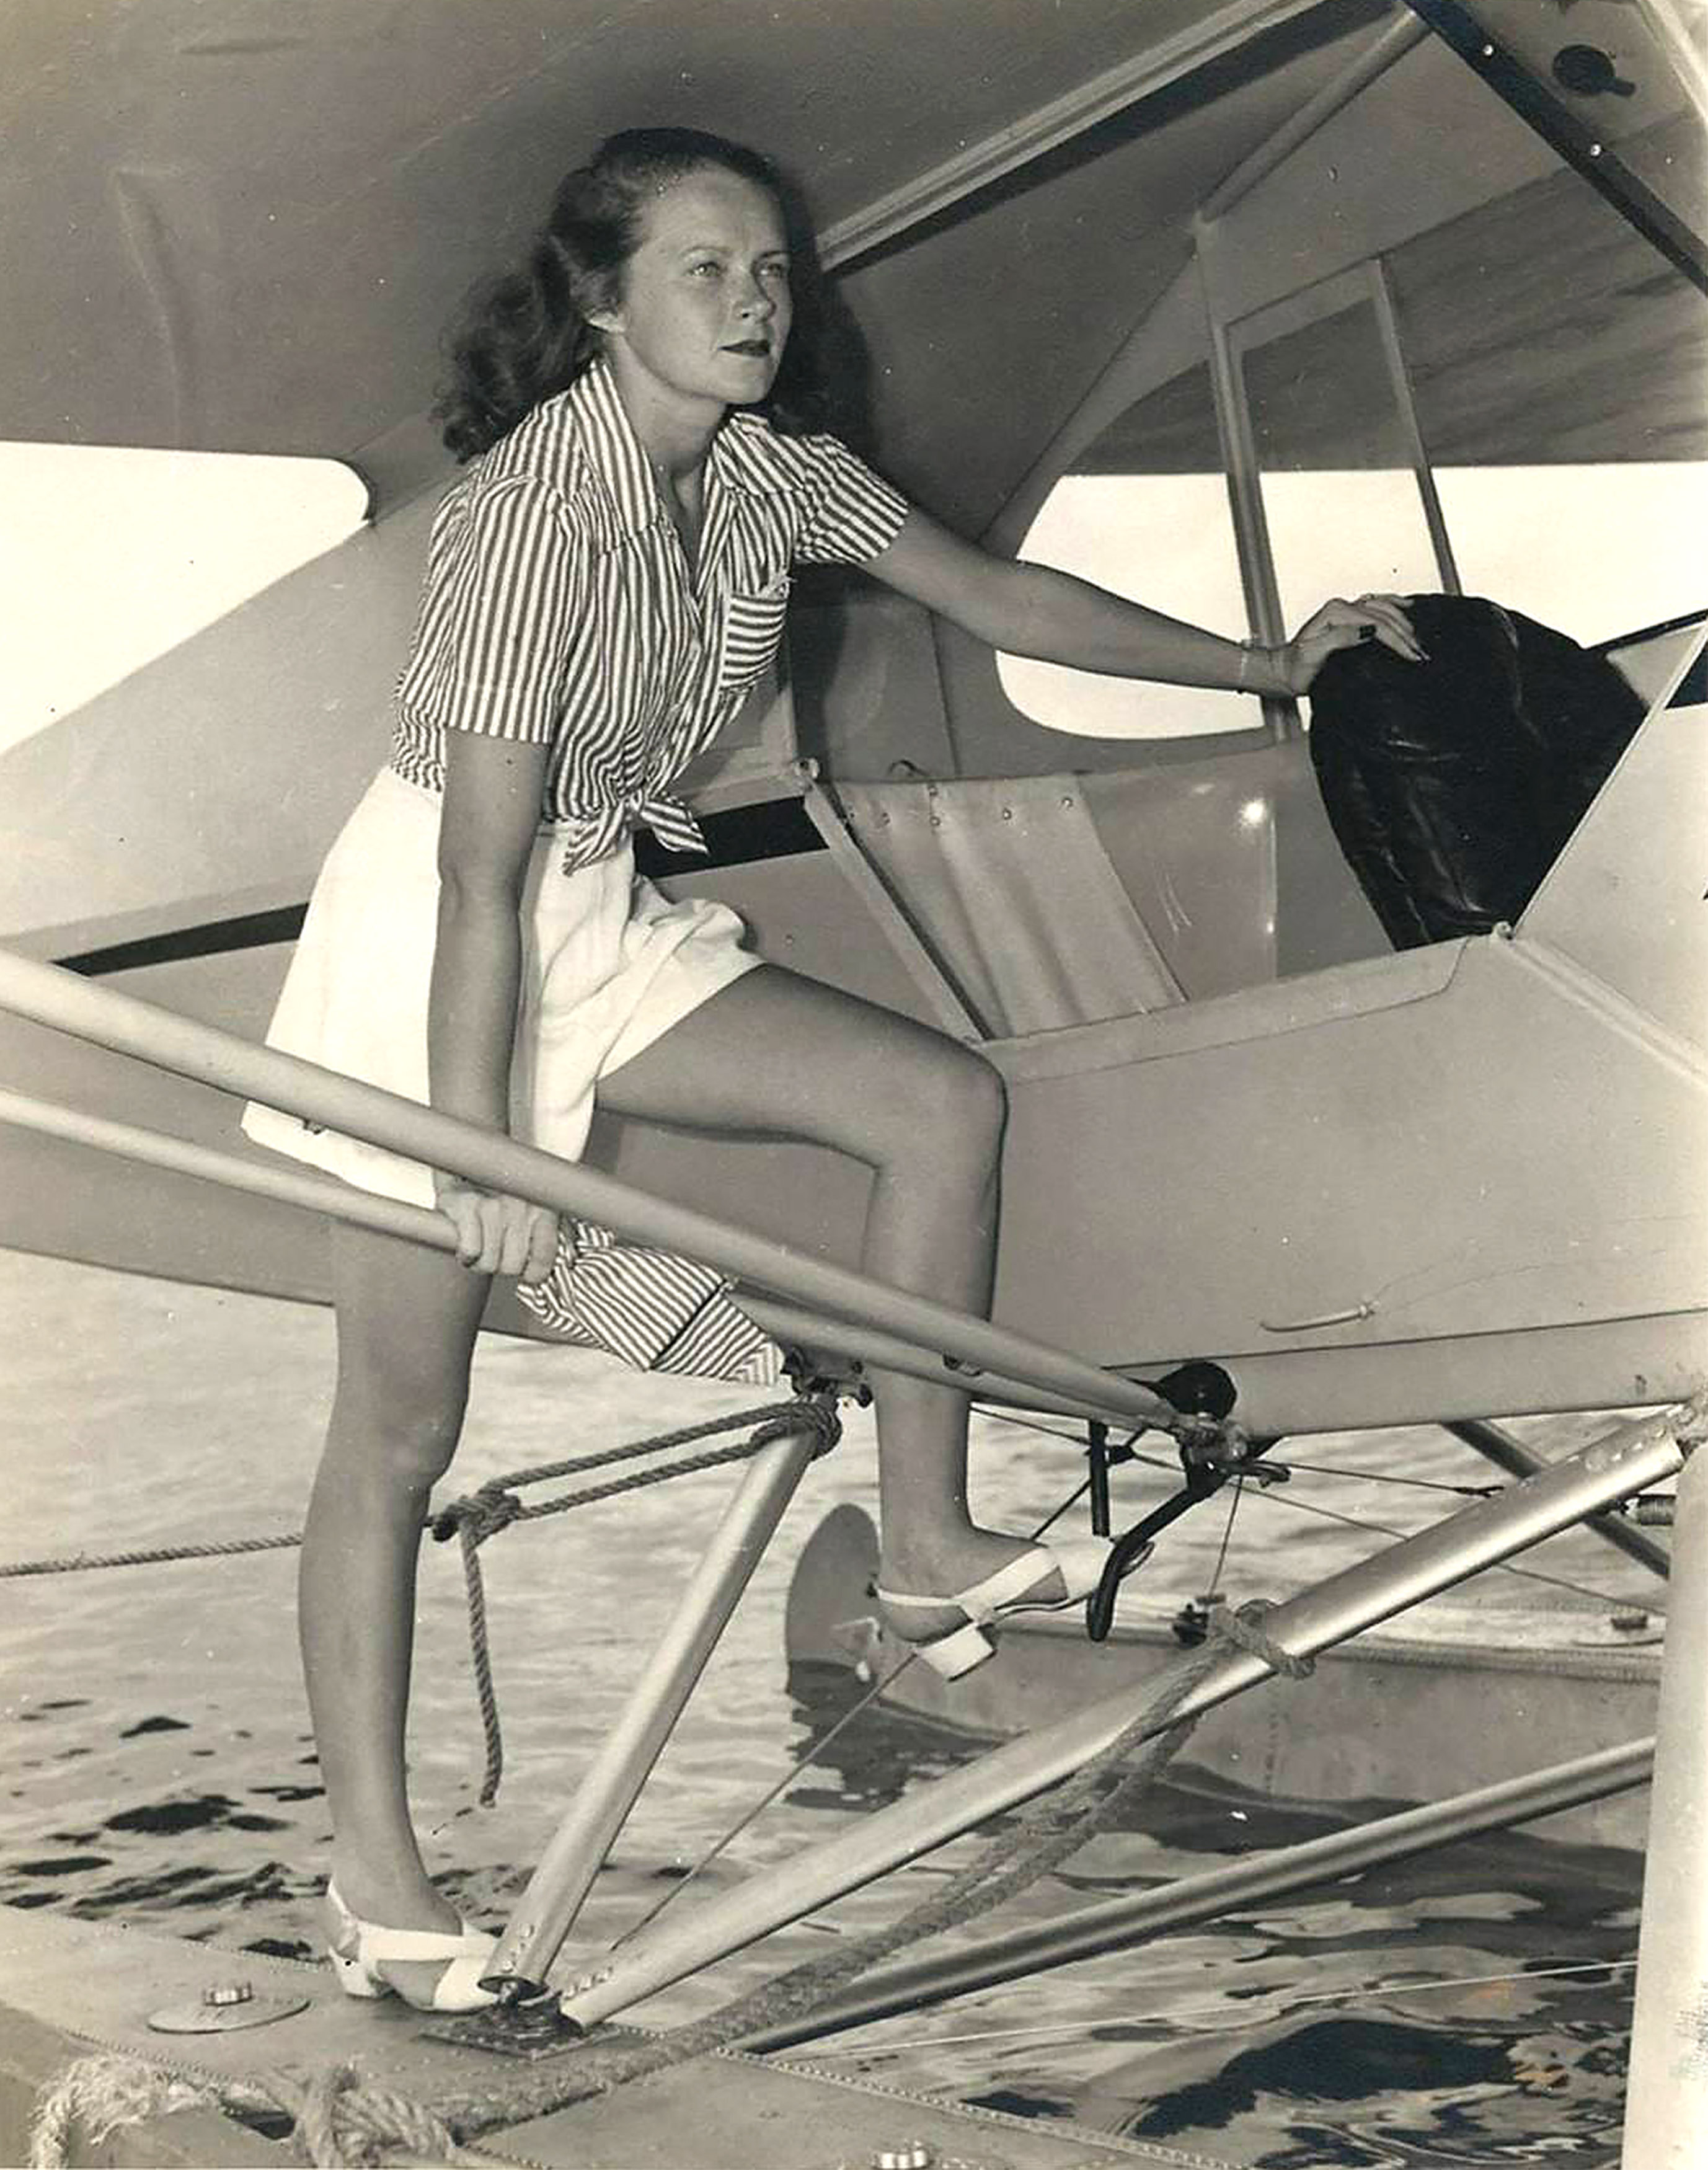 Embry-Riddle pilot Corinne Smith flew the same Piper Cub floatplane on the same day that John F. Kennedy took training in it during the spring of 1944 in Miami. Photo courtesy of Embry-Riddle Aeronautical University.